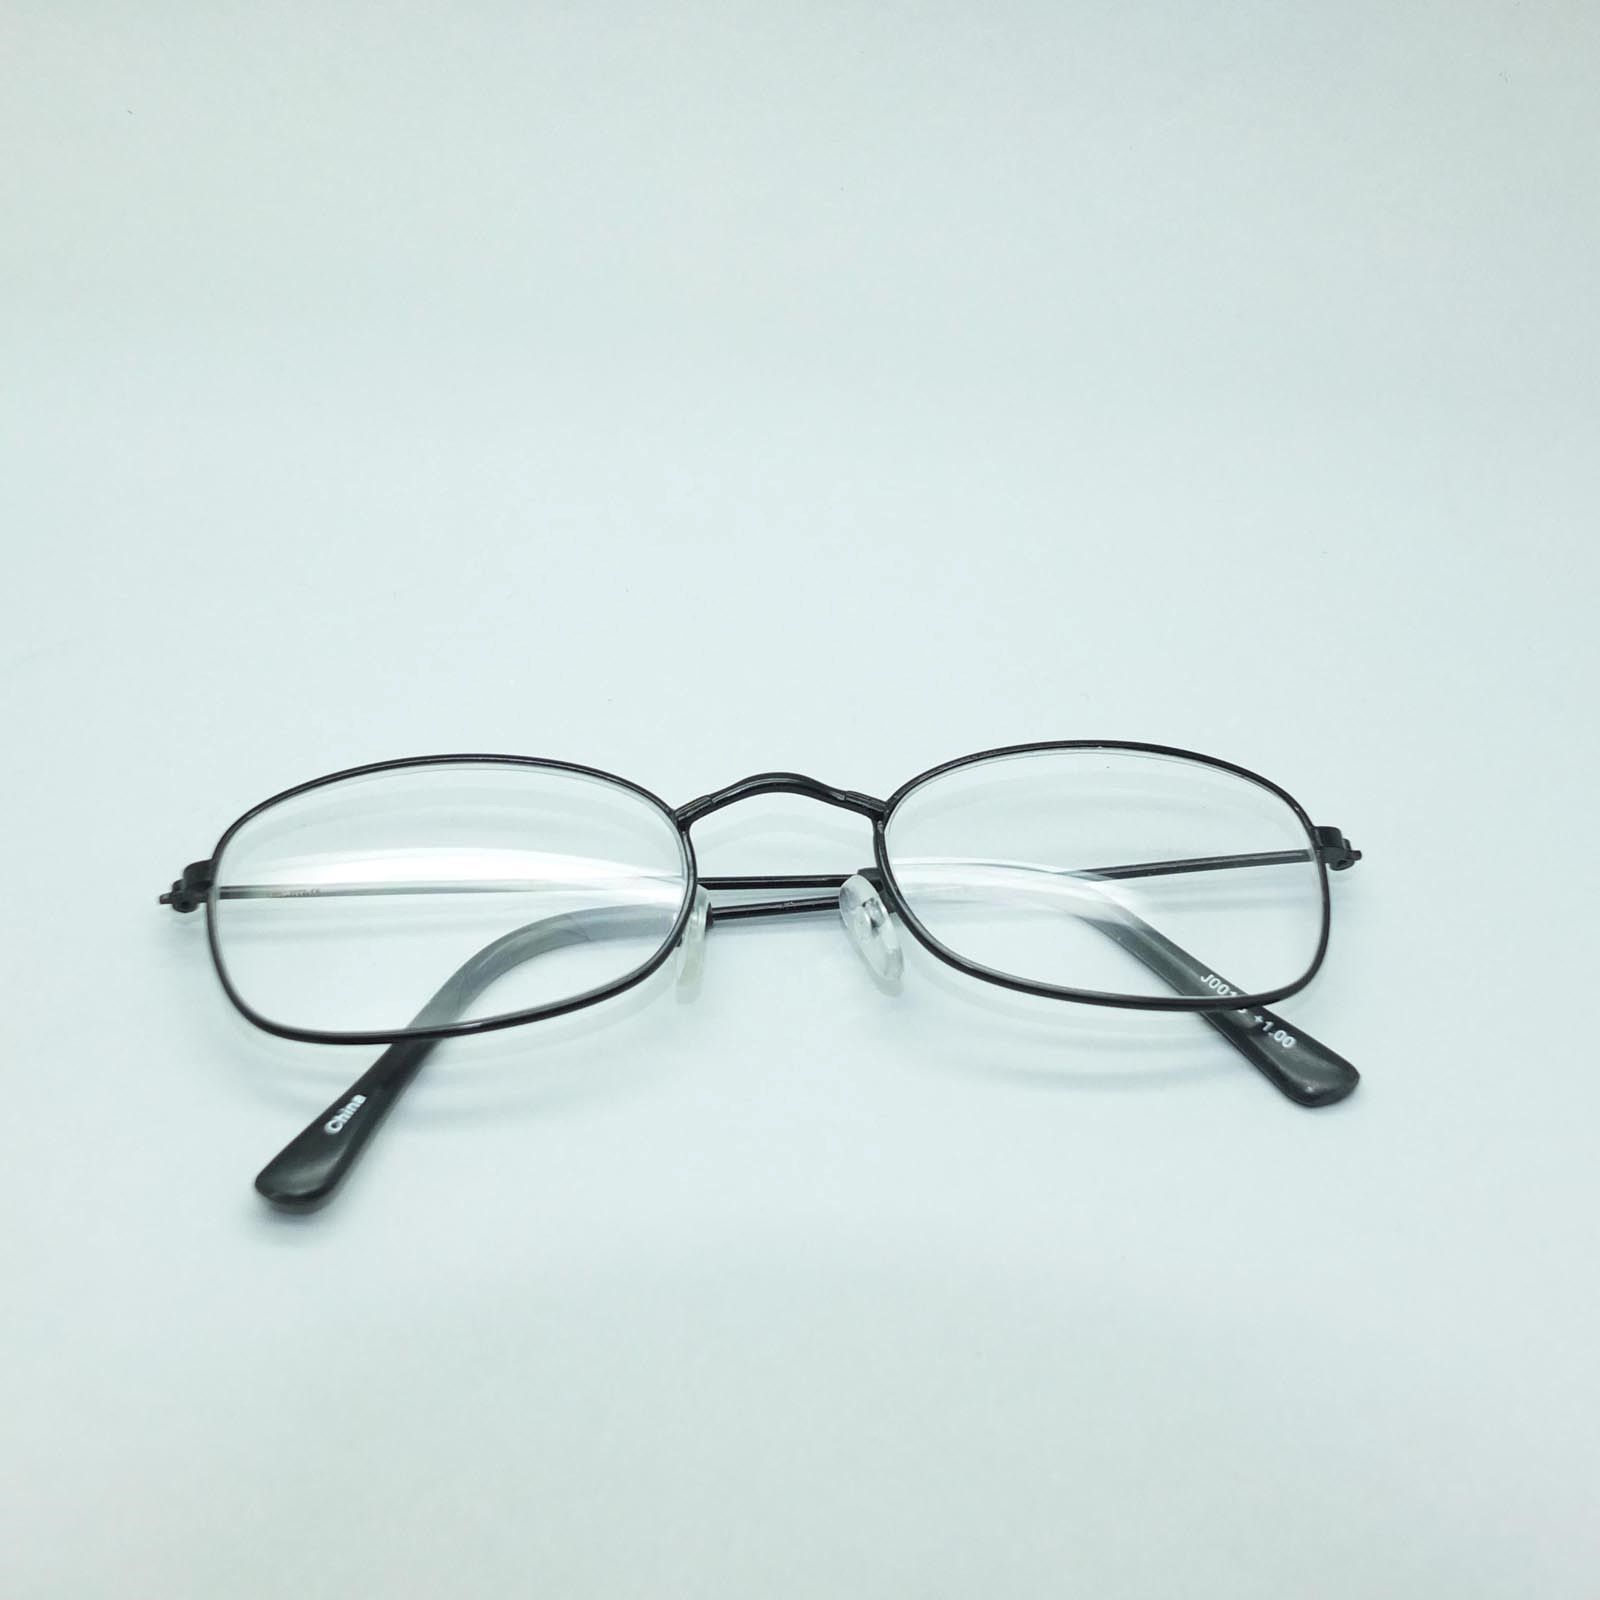 309e4585fea Simple Oval Black Metal Wire Frame Delicate Reading Glasses +1.25 Lens